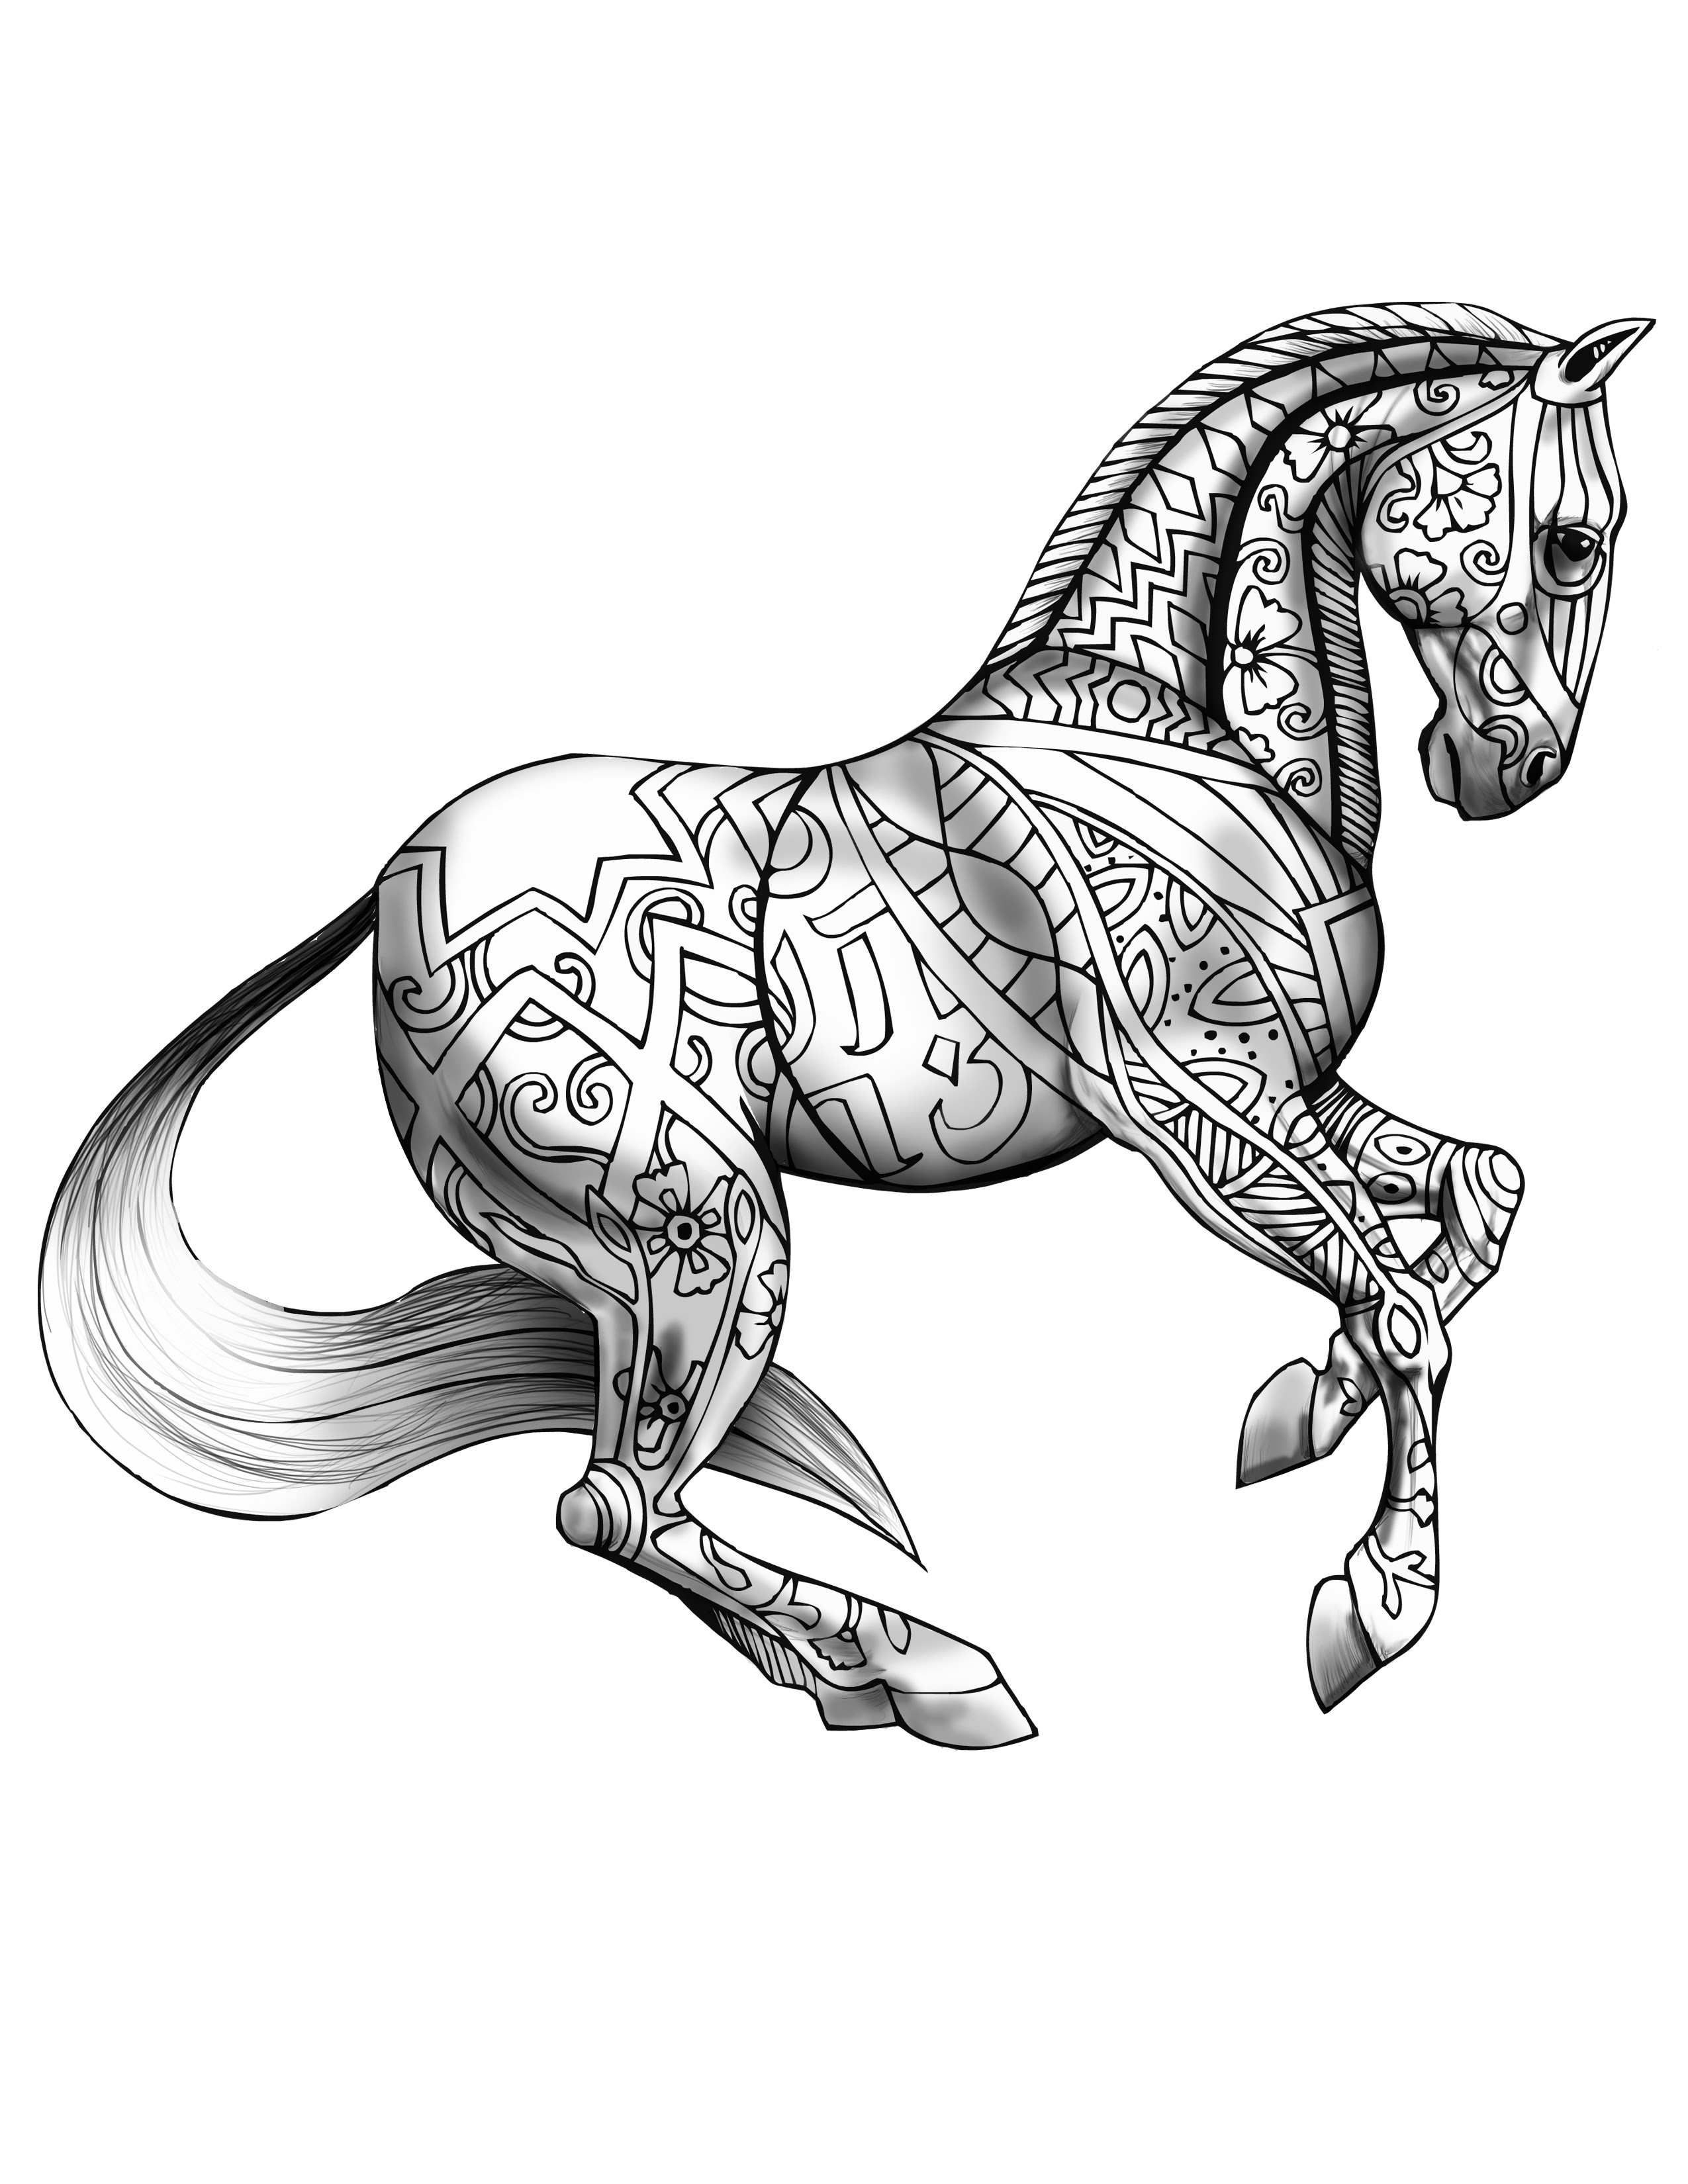 Coloring Book Page For Adults Print and Download- Horse ...